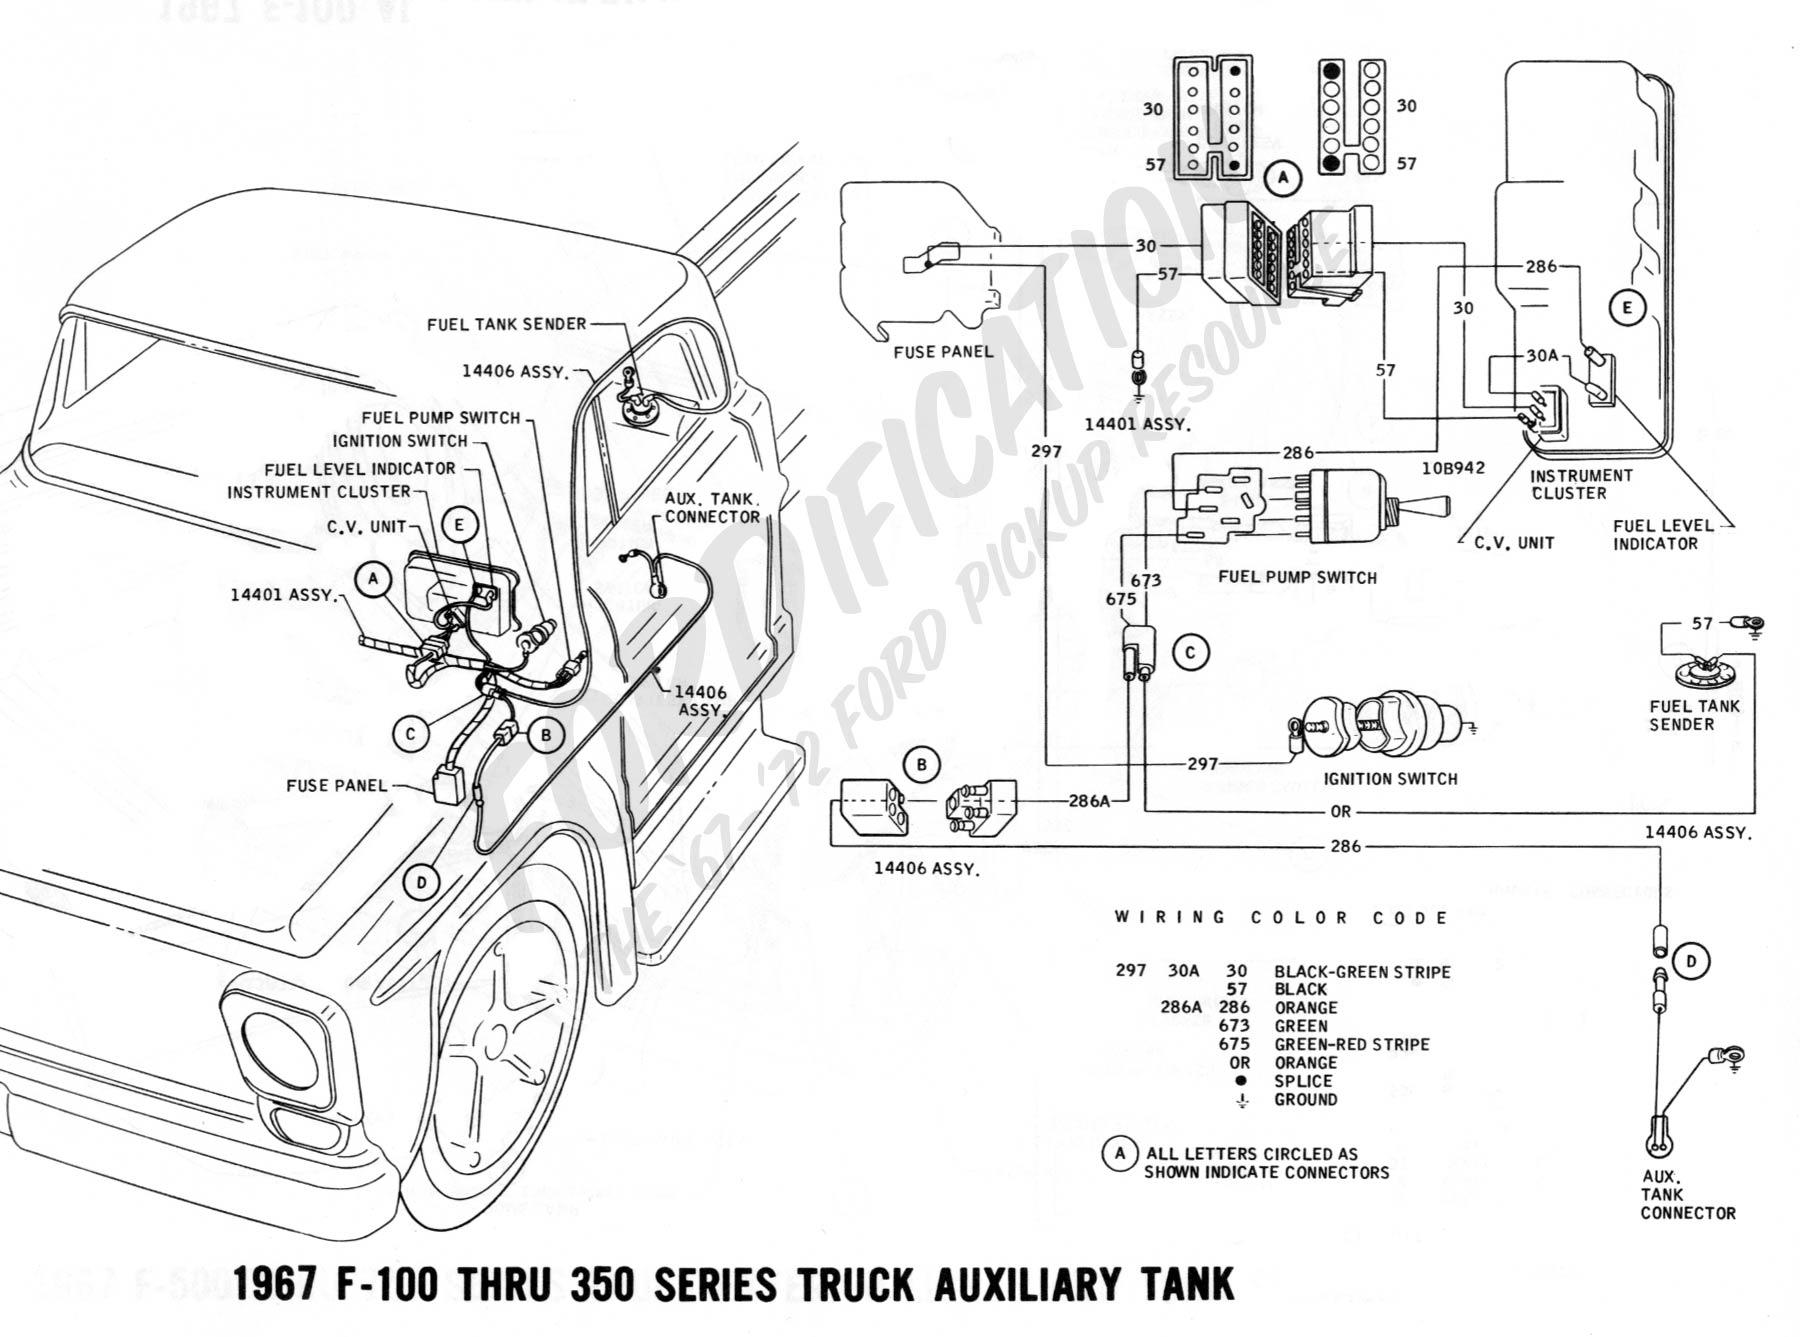 Schematics b likewise 36gj1 Re Building 1972 Ford F100 390 Hands Tore Down together with 1305347 Making The Neutral Safety Switch Manual likewise Chevy Hydroboost Plumbing Diagram also 93 Ford F700 Truck Wiring Diagrams. on ford f600 truck wiring diagrams